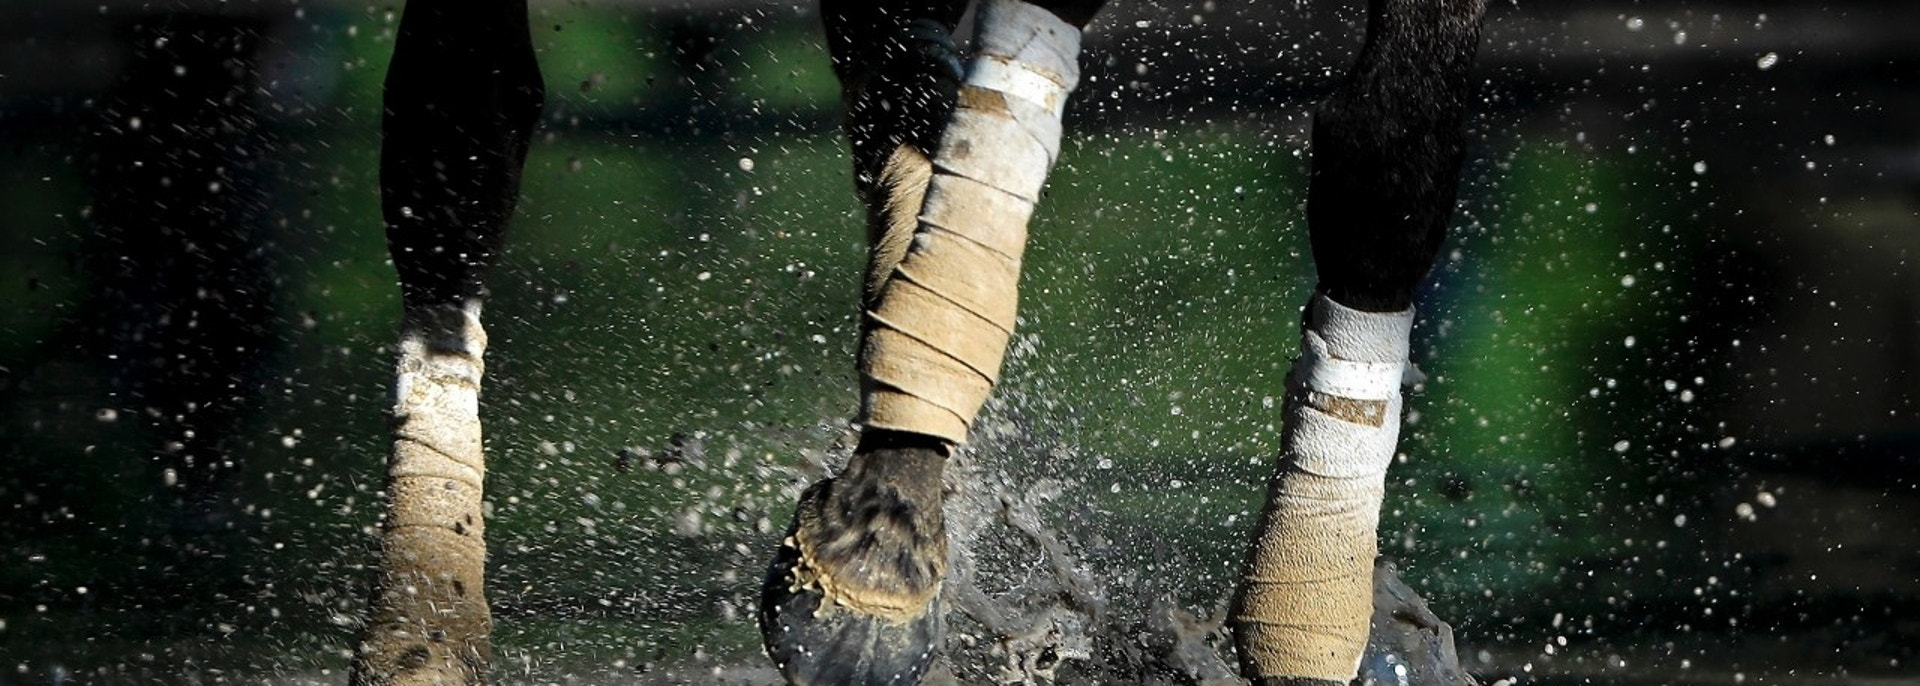 A thoroughbred walks through a puddle on its way back to the stable after a workout at Belmont Park, Tuesday, June 5, 2018, in Elmont, N.Y. Justify will attempt to become the 13th Triple Crown winner when he runs in the 150th running of the Belmont Stakes horse race on Saturday. (AP Photo/Julie Jacobson)